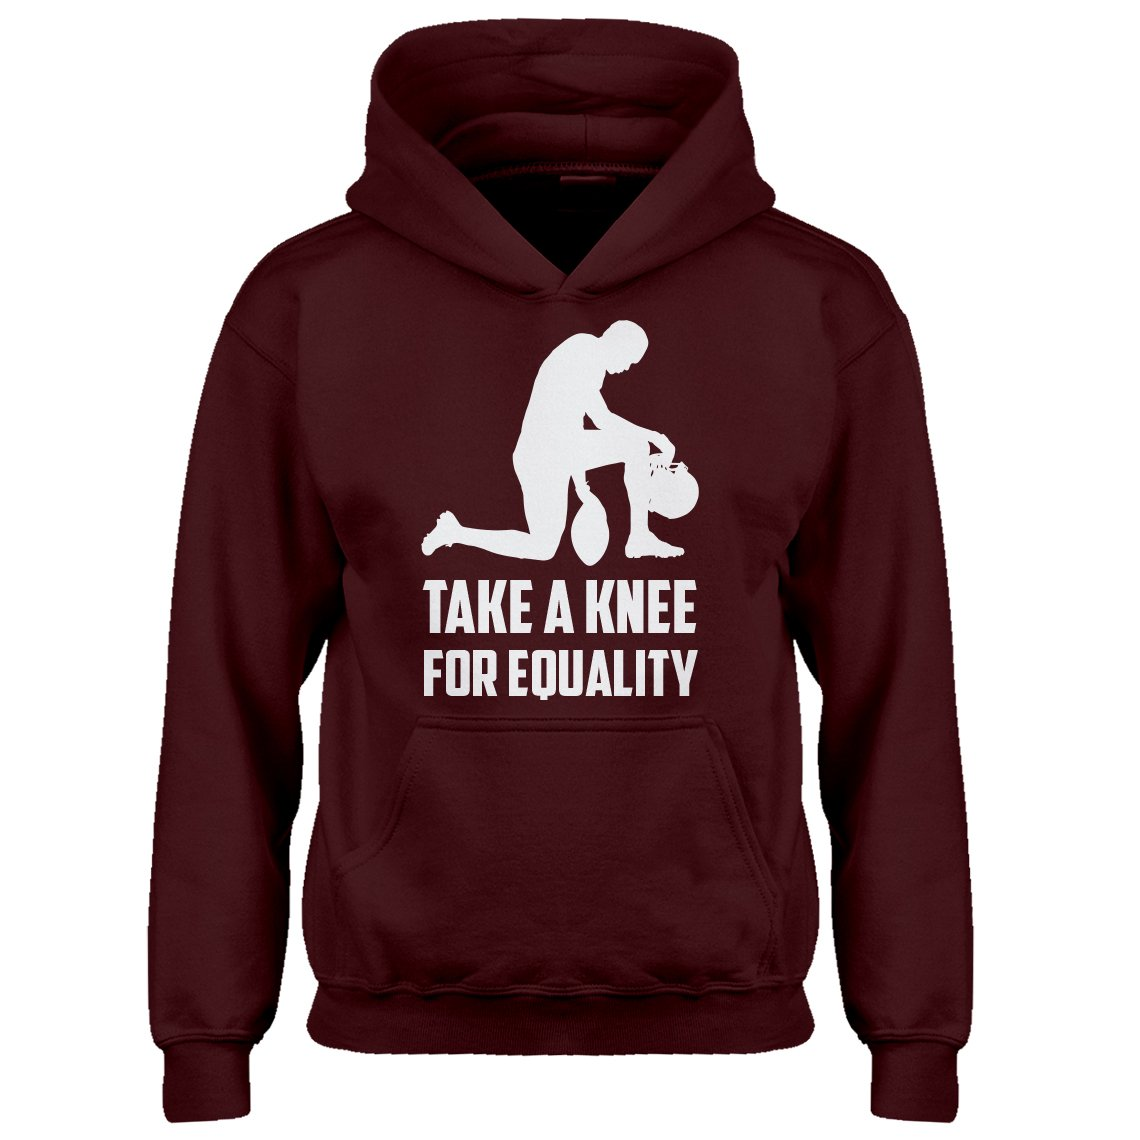 Indica Plateau Youth Players Take The Knee for Equality Kids Hoodie